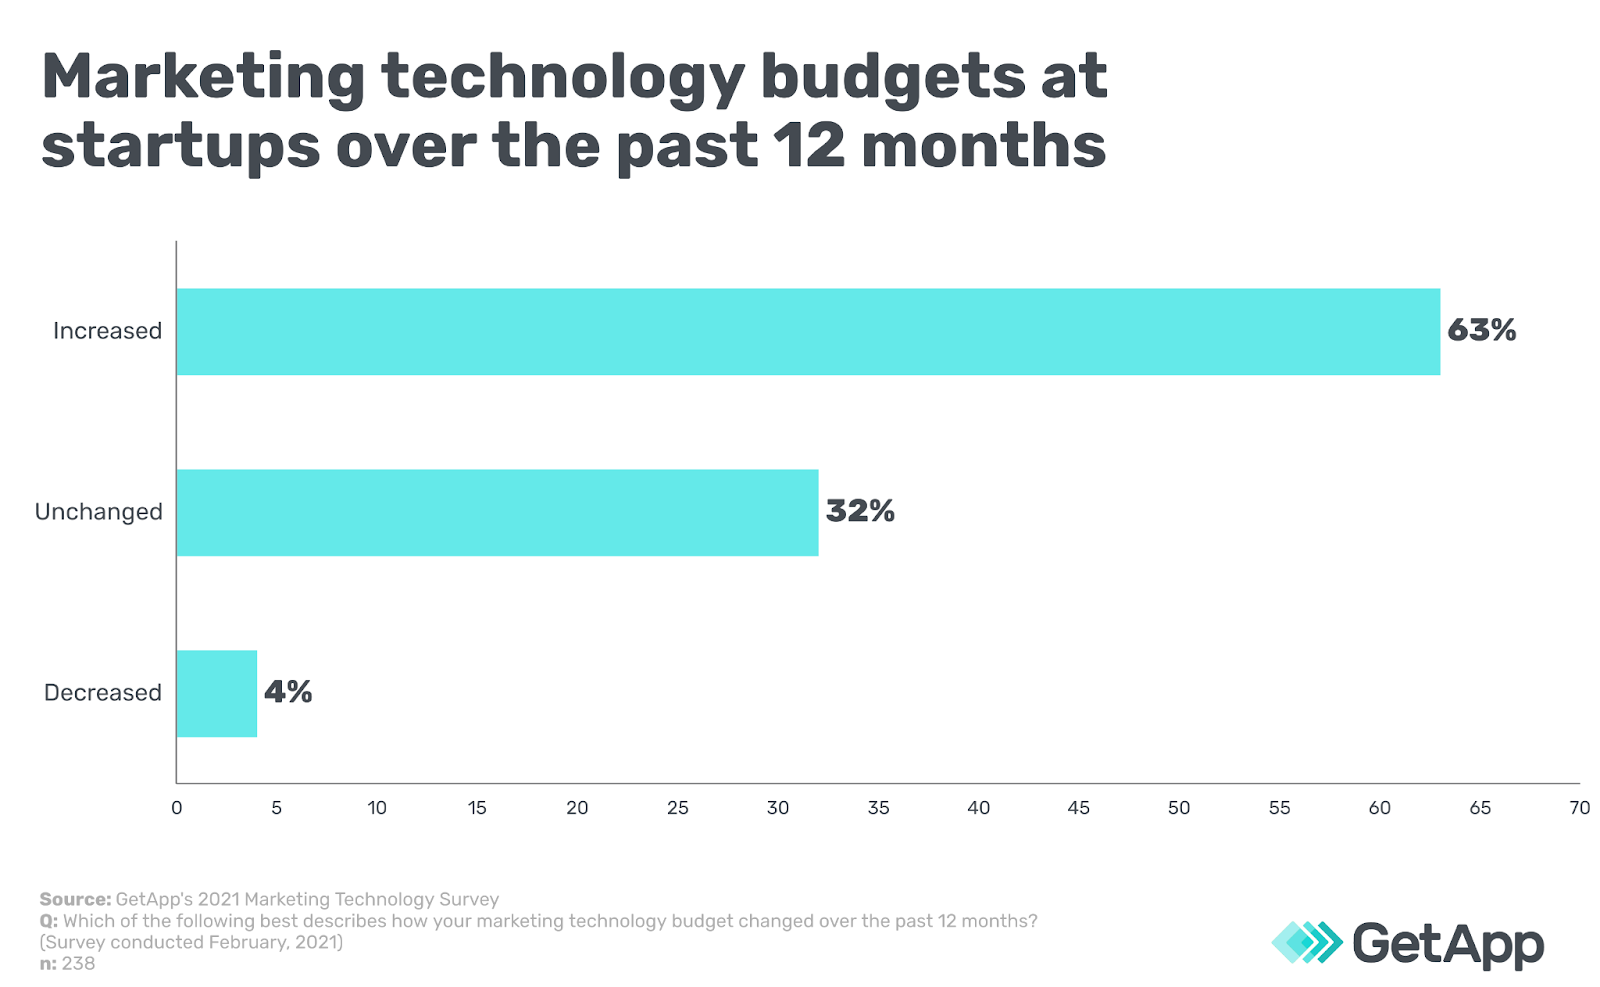 Marketing technology budgets at startups over the past 12 months